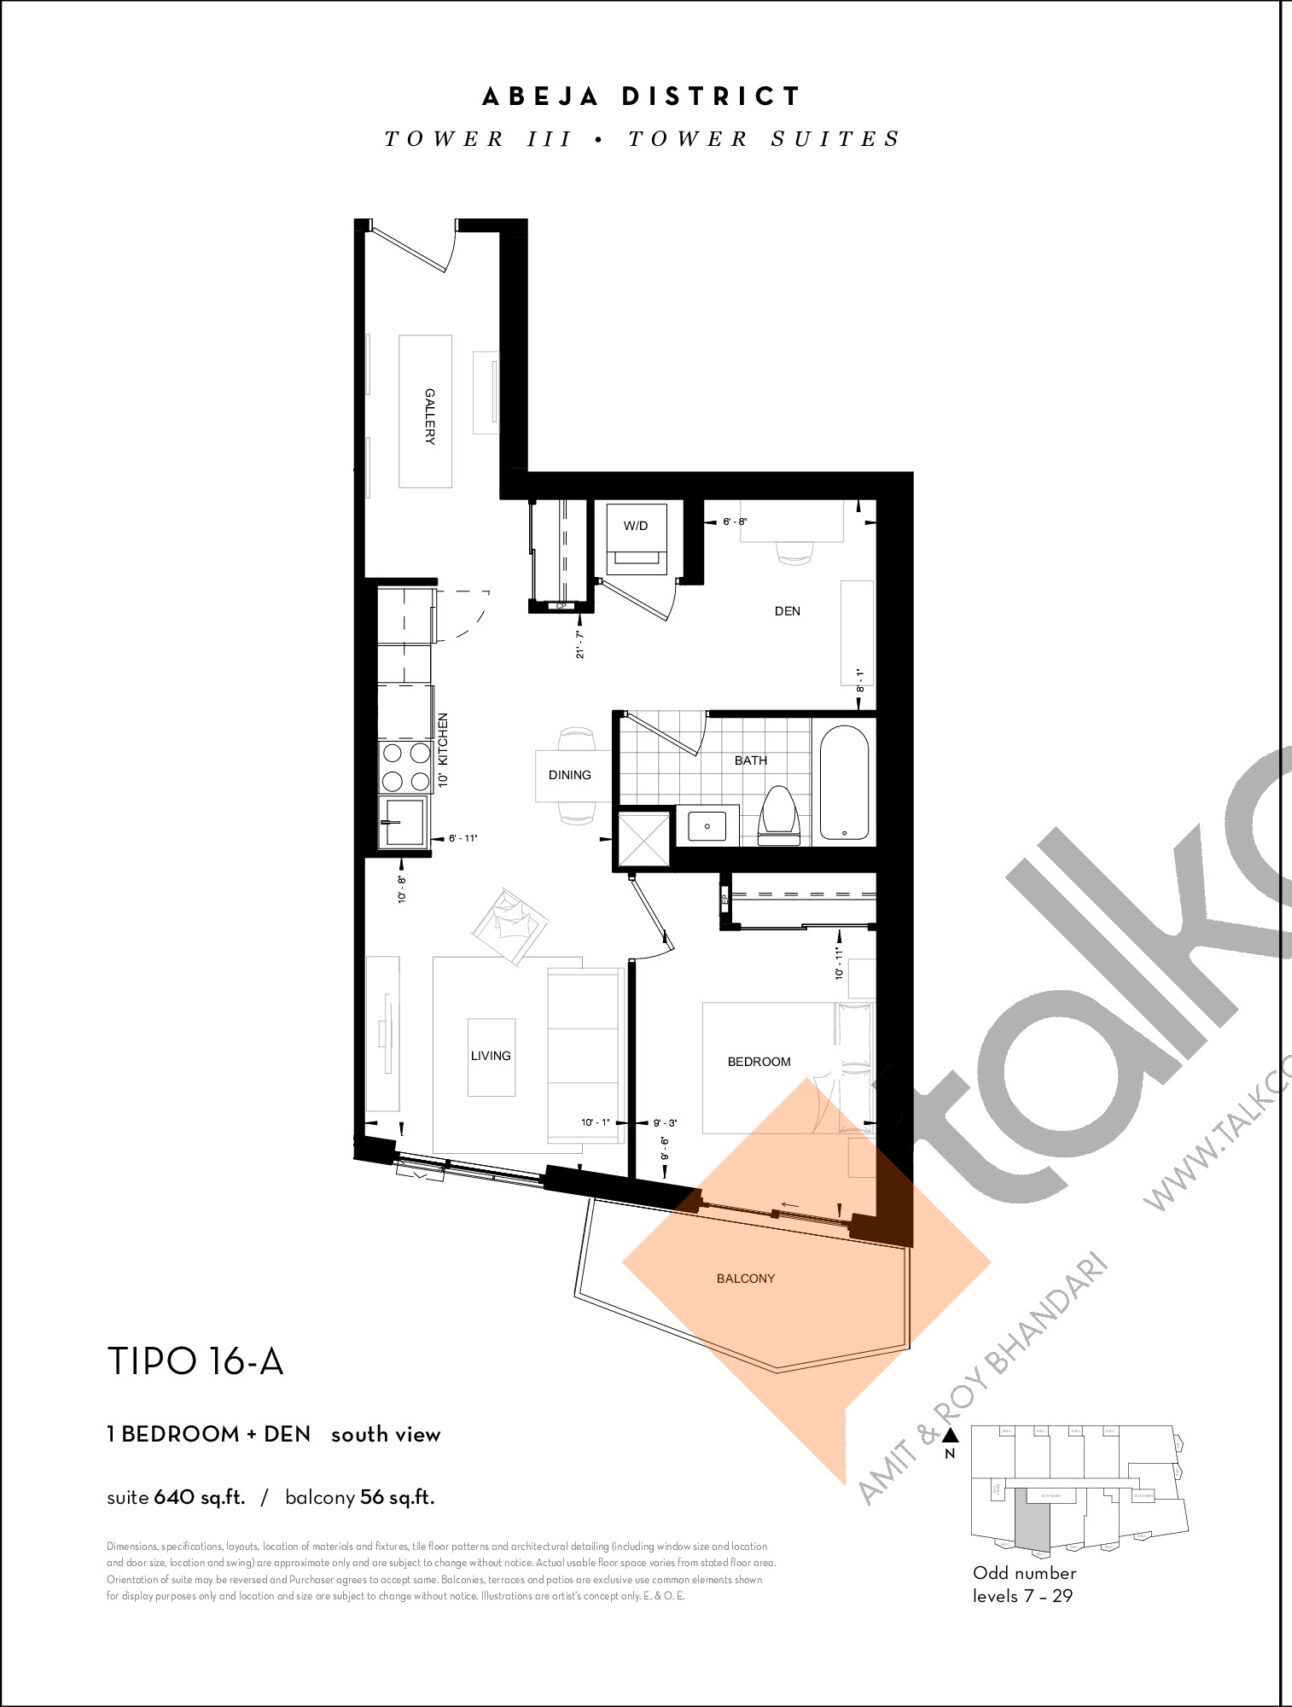 TIPO 16-A Floor Plan at Abeja District Condos Tower 3 - 640 sq.ft